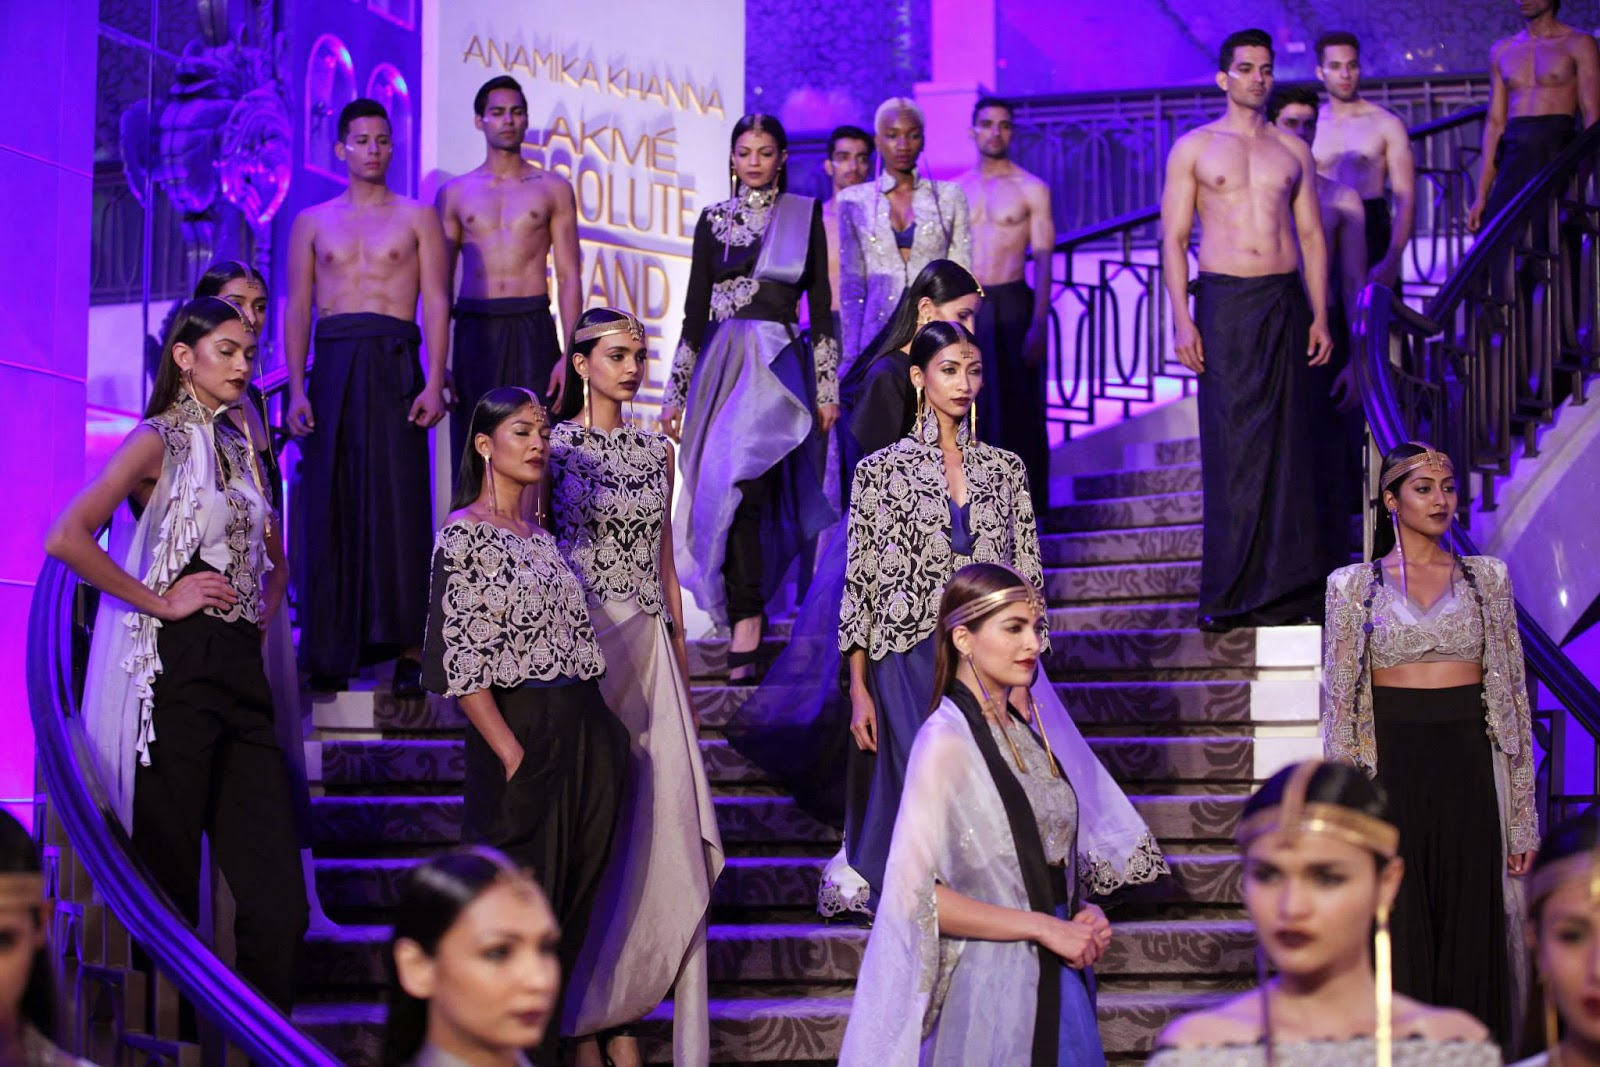 Overview of Lakme Fashion Week Summer/Resort 2015 | Anamika Khanna collection at Lakme Fashion Week Summer/Resort 2015